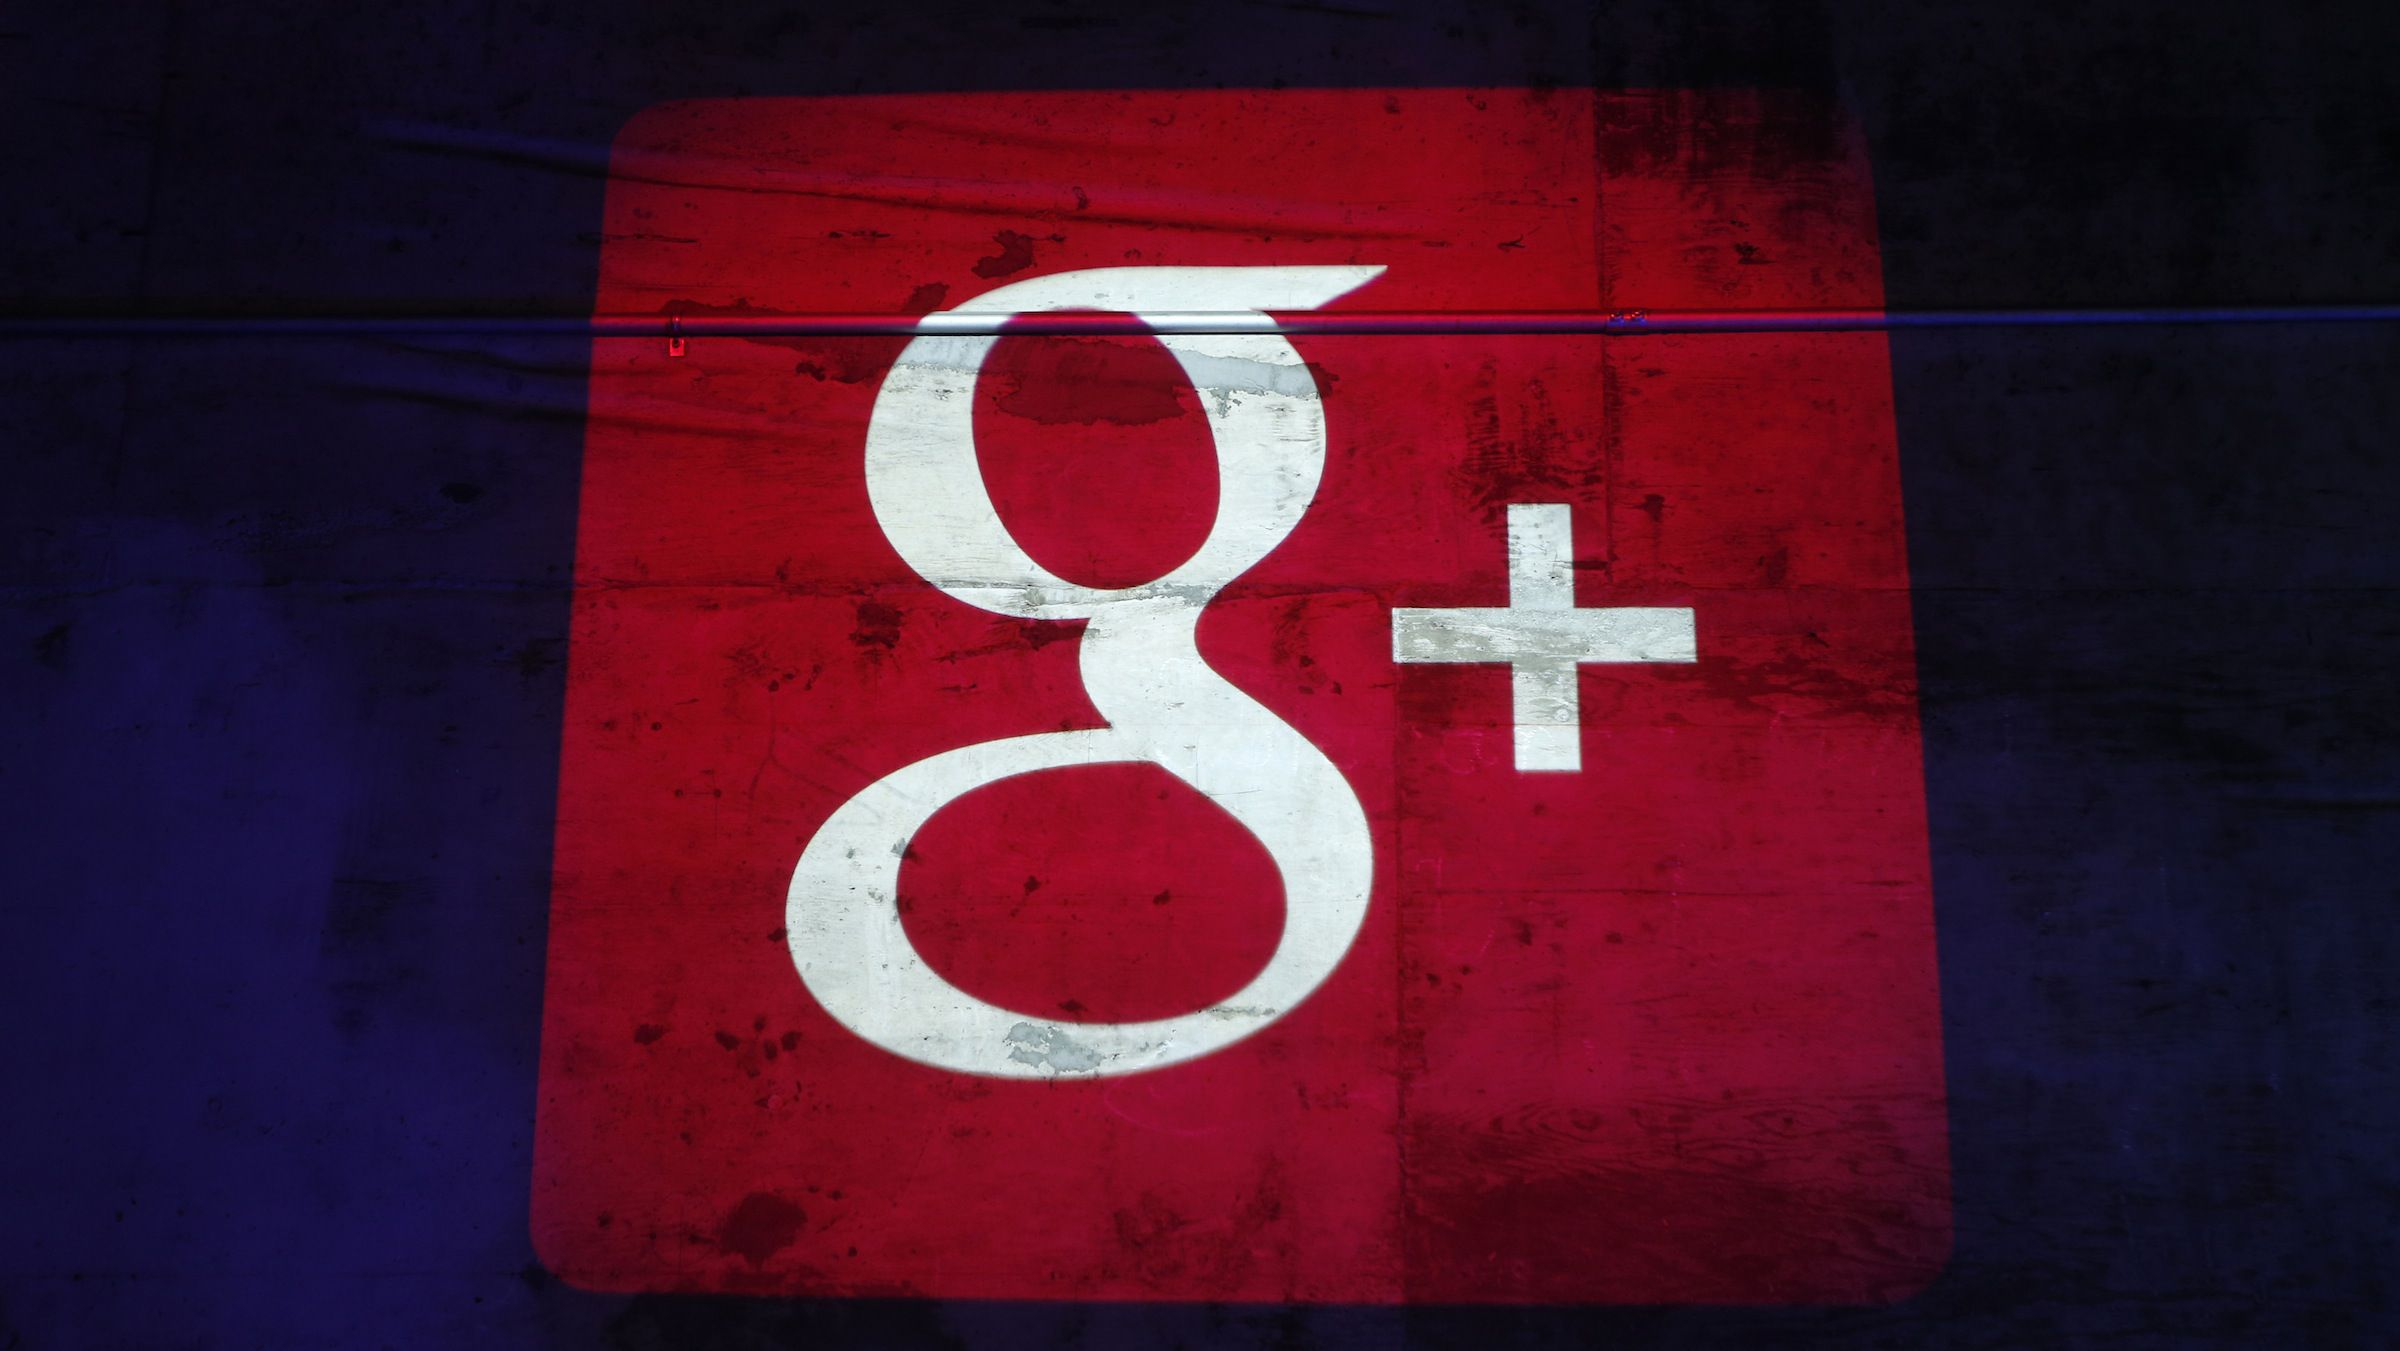 The Google Plus logo is projected on to the wall during a Google event in San Francisco, California, October 29, 2013. REUTERS/Beck Diefenbach (UNITED STATES - Tags: BUSINESS SCIENCE TECHNOLOGY LOGO) - RTX14SWJ